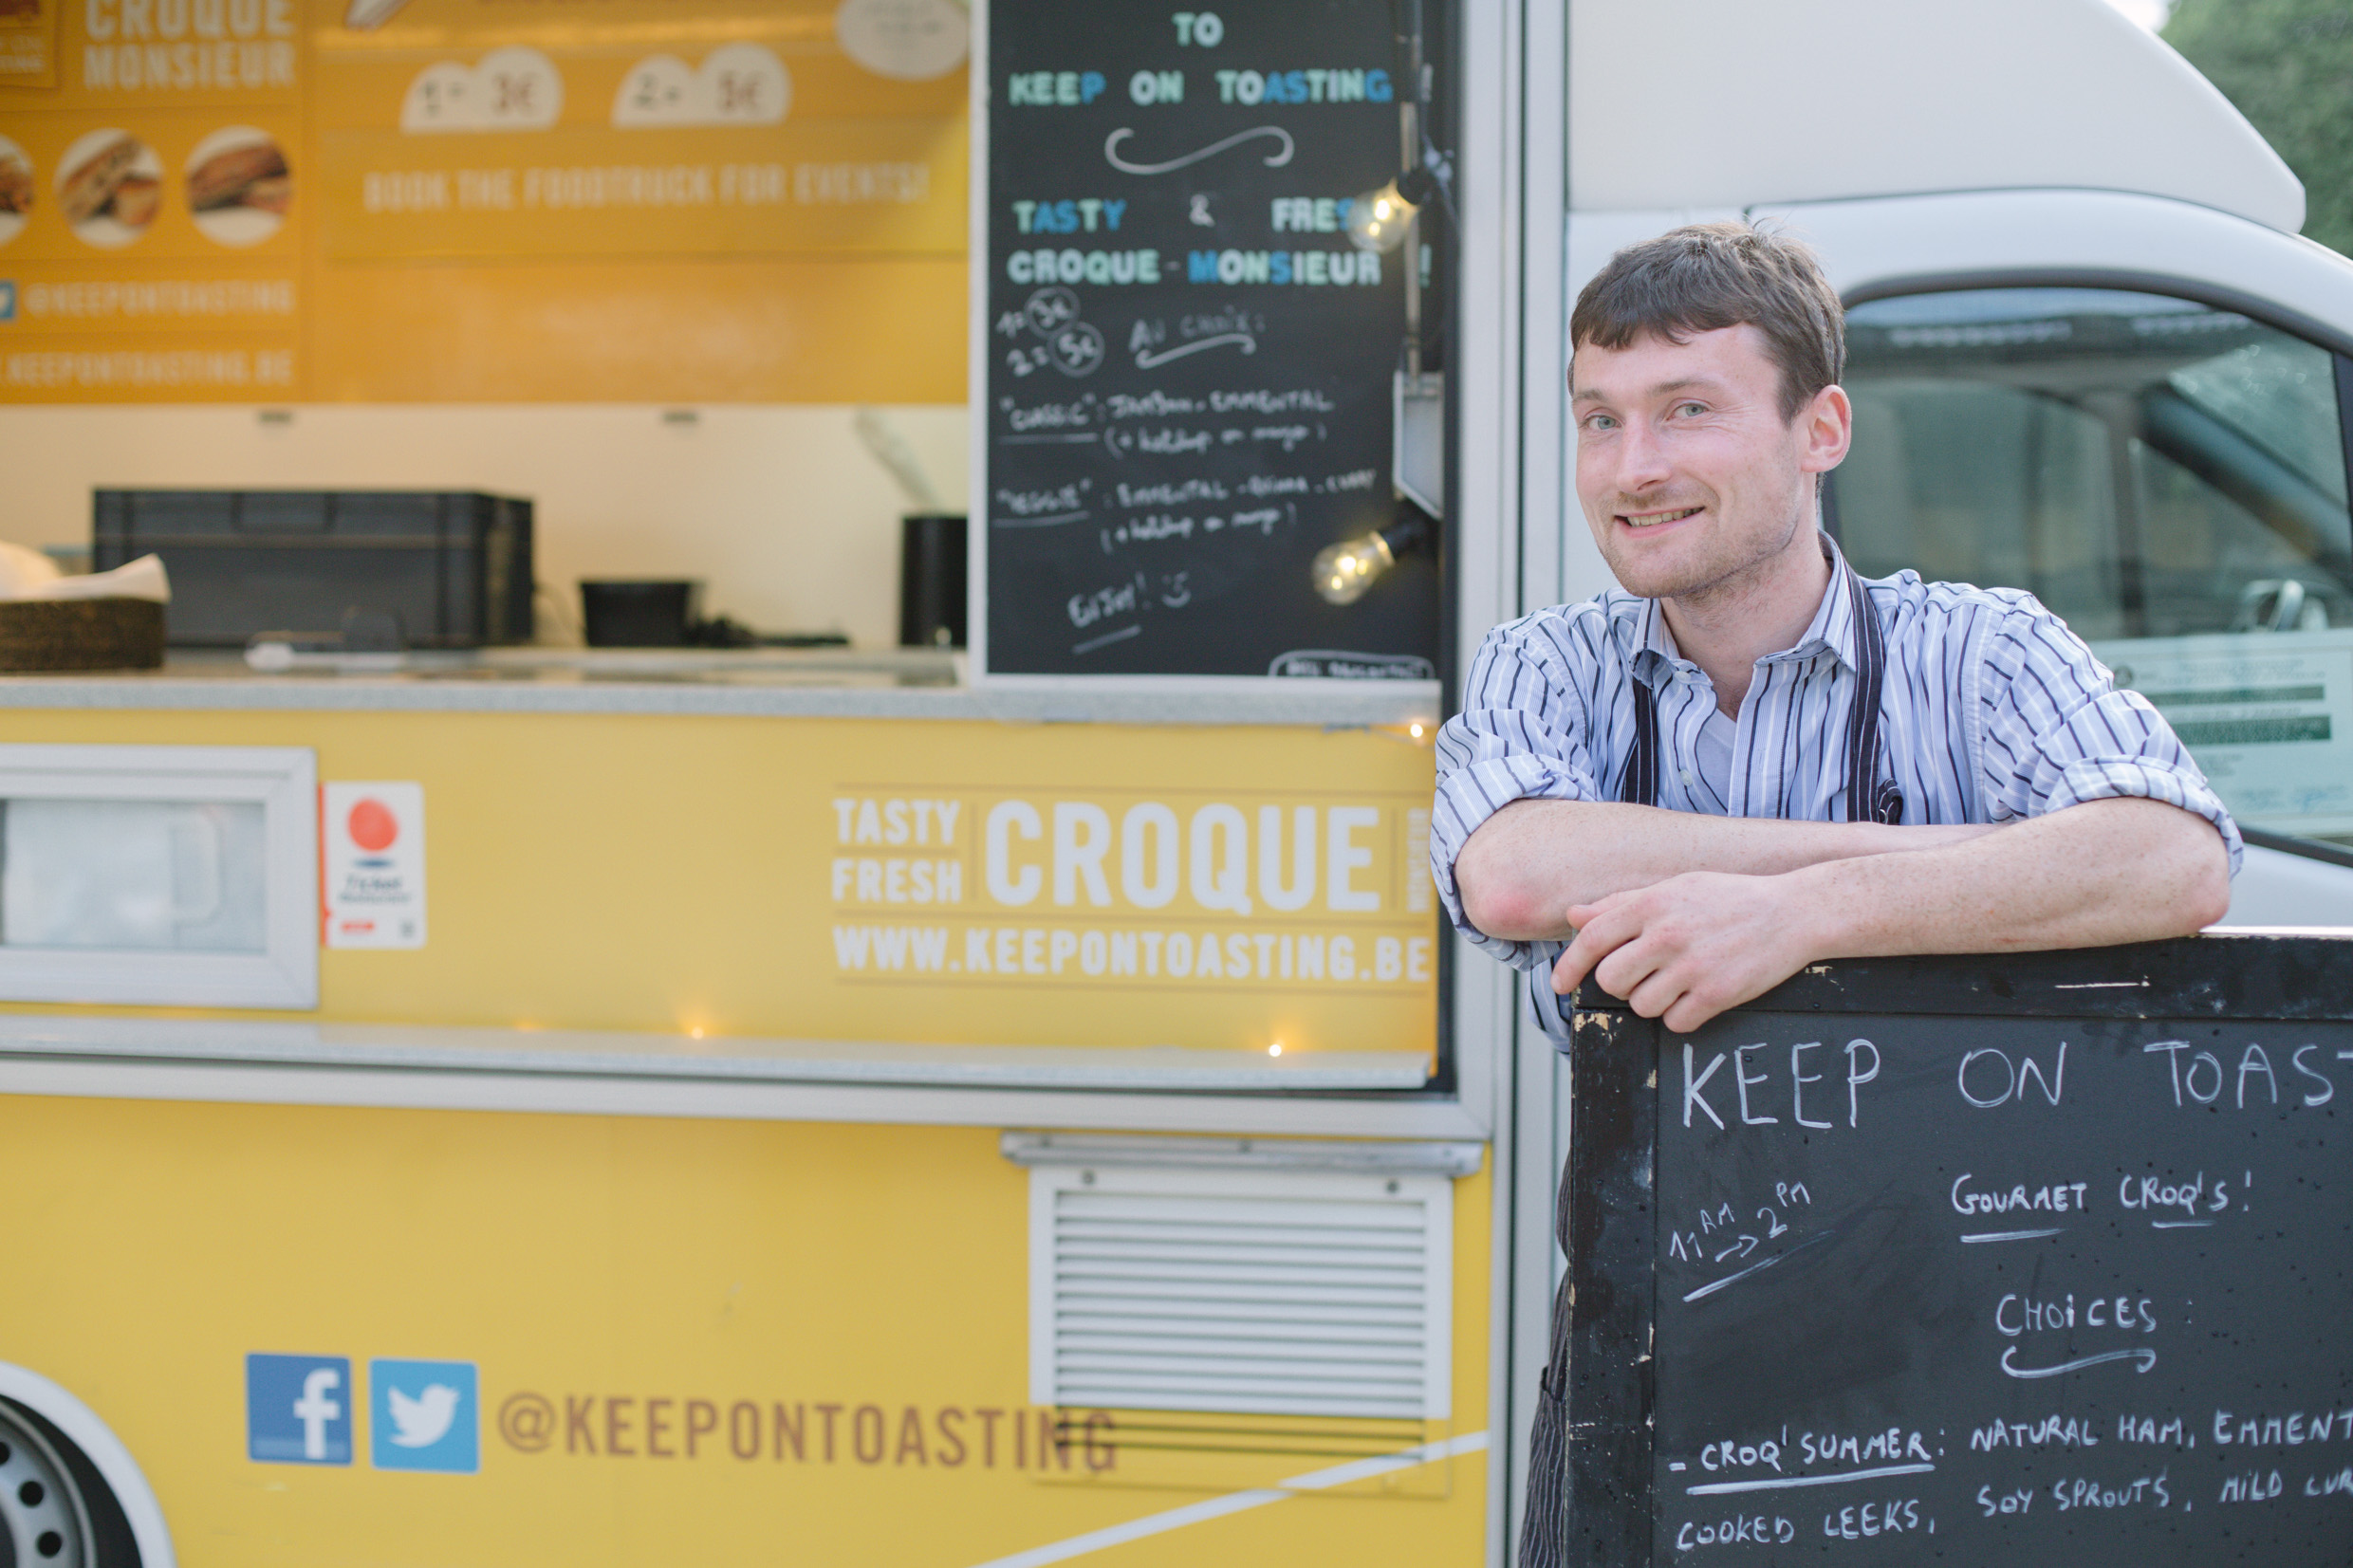 kwakoo-event-foodtruck-keep-on-toasting-09